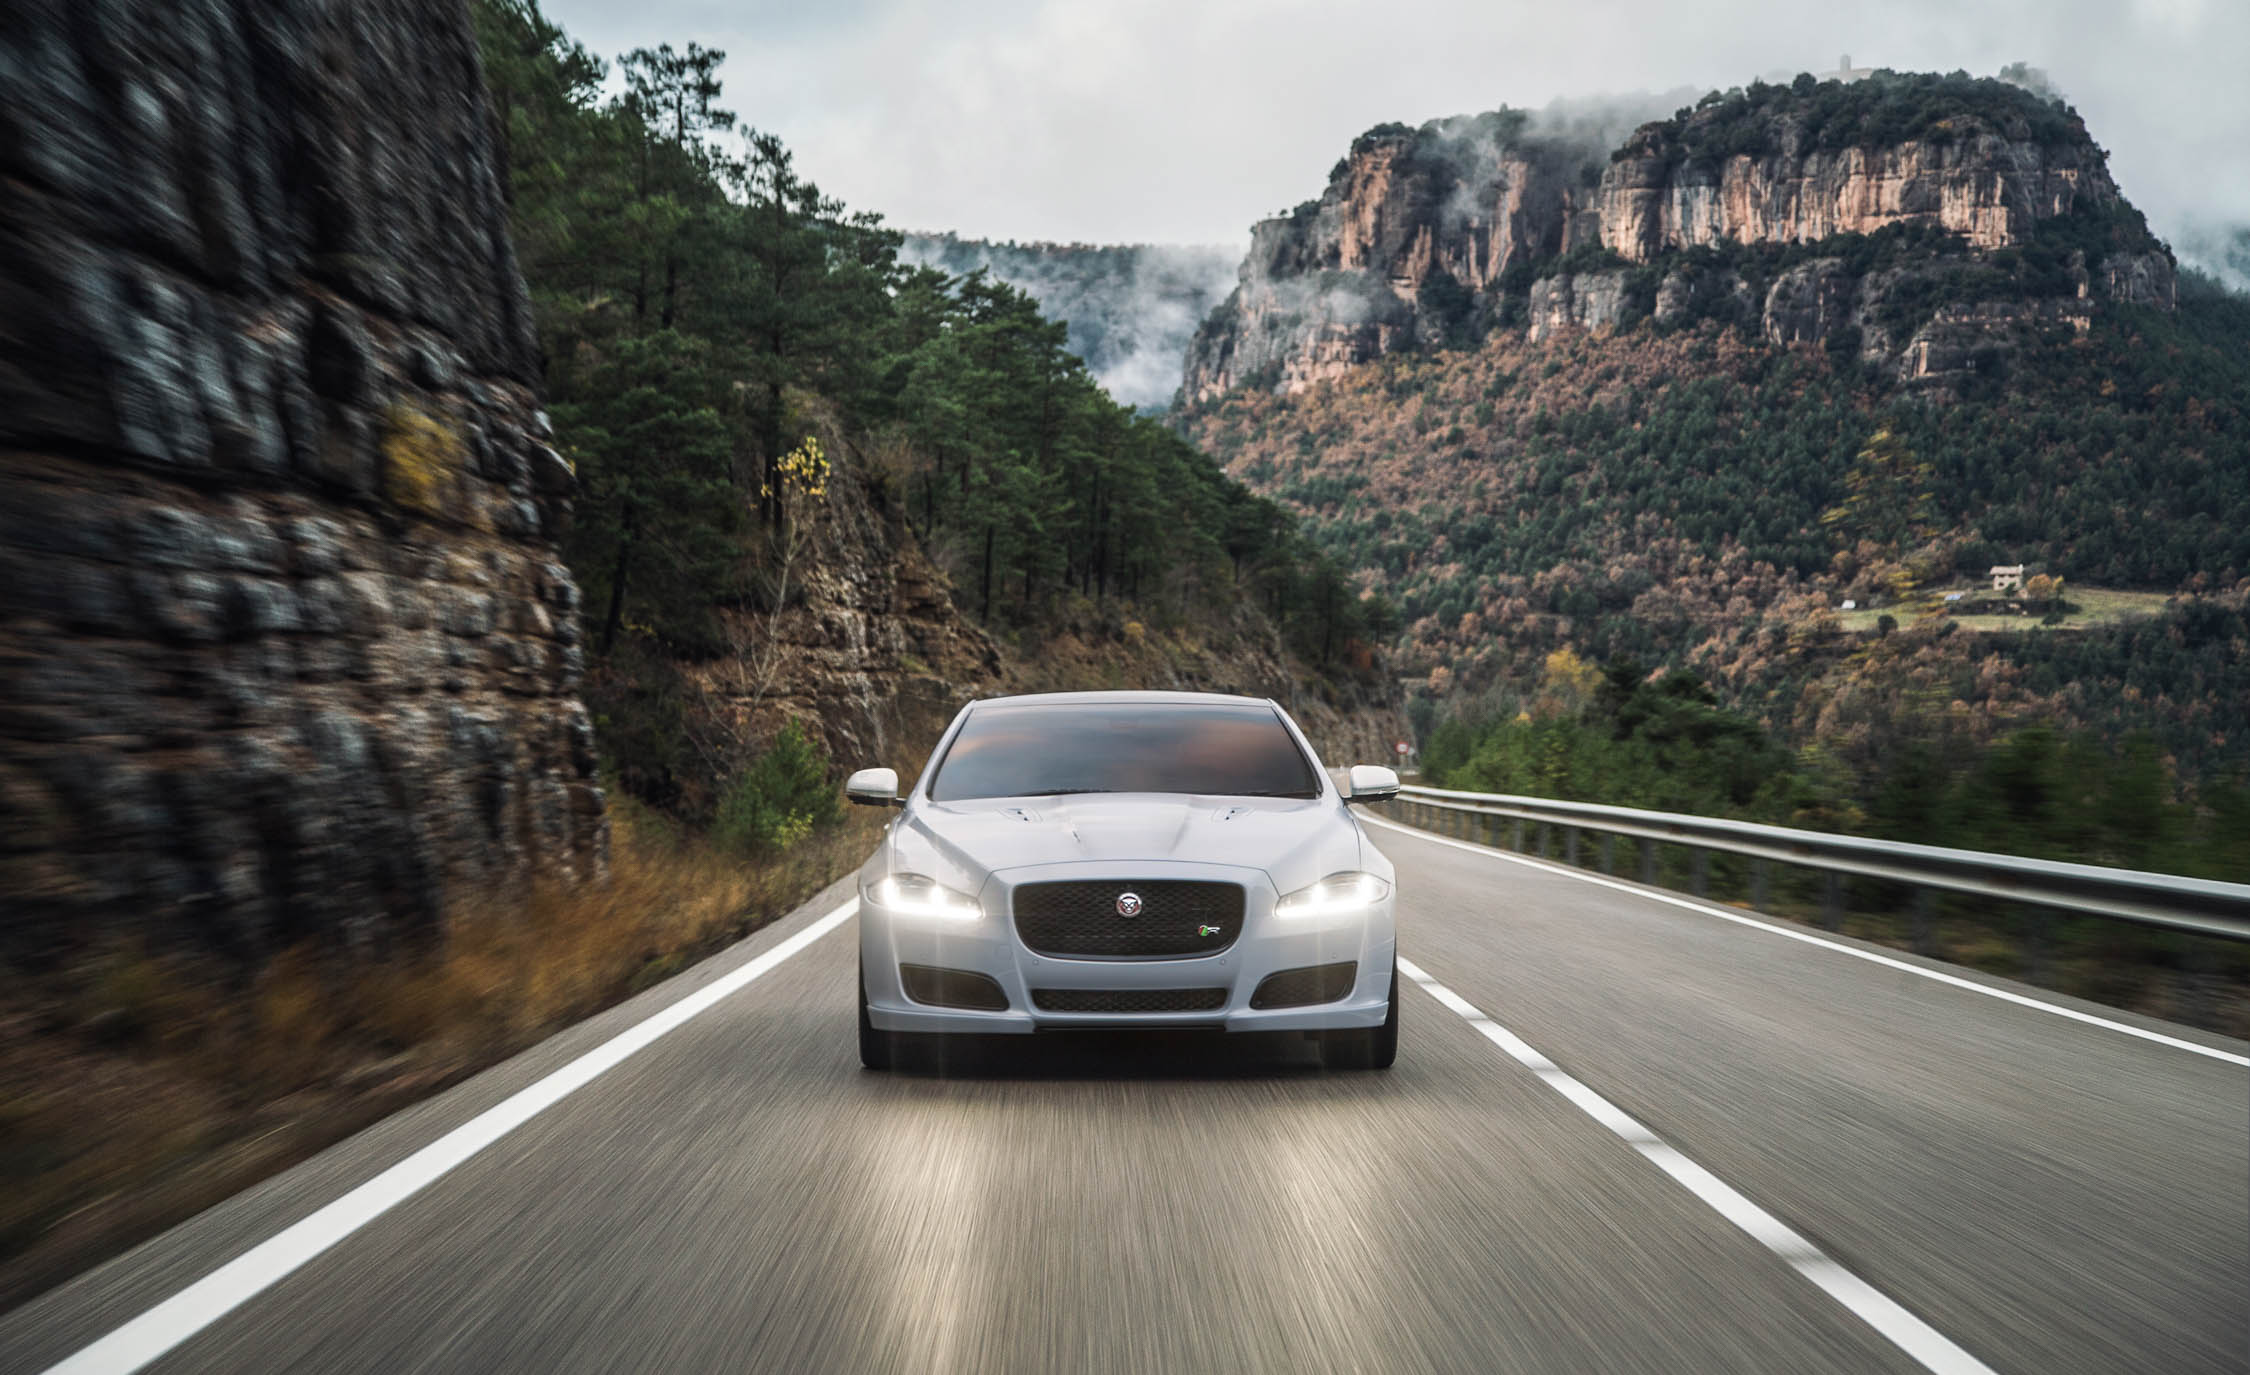 2016 Jaguar XJR Front View